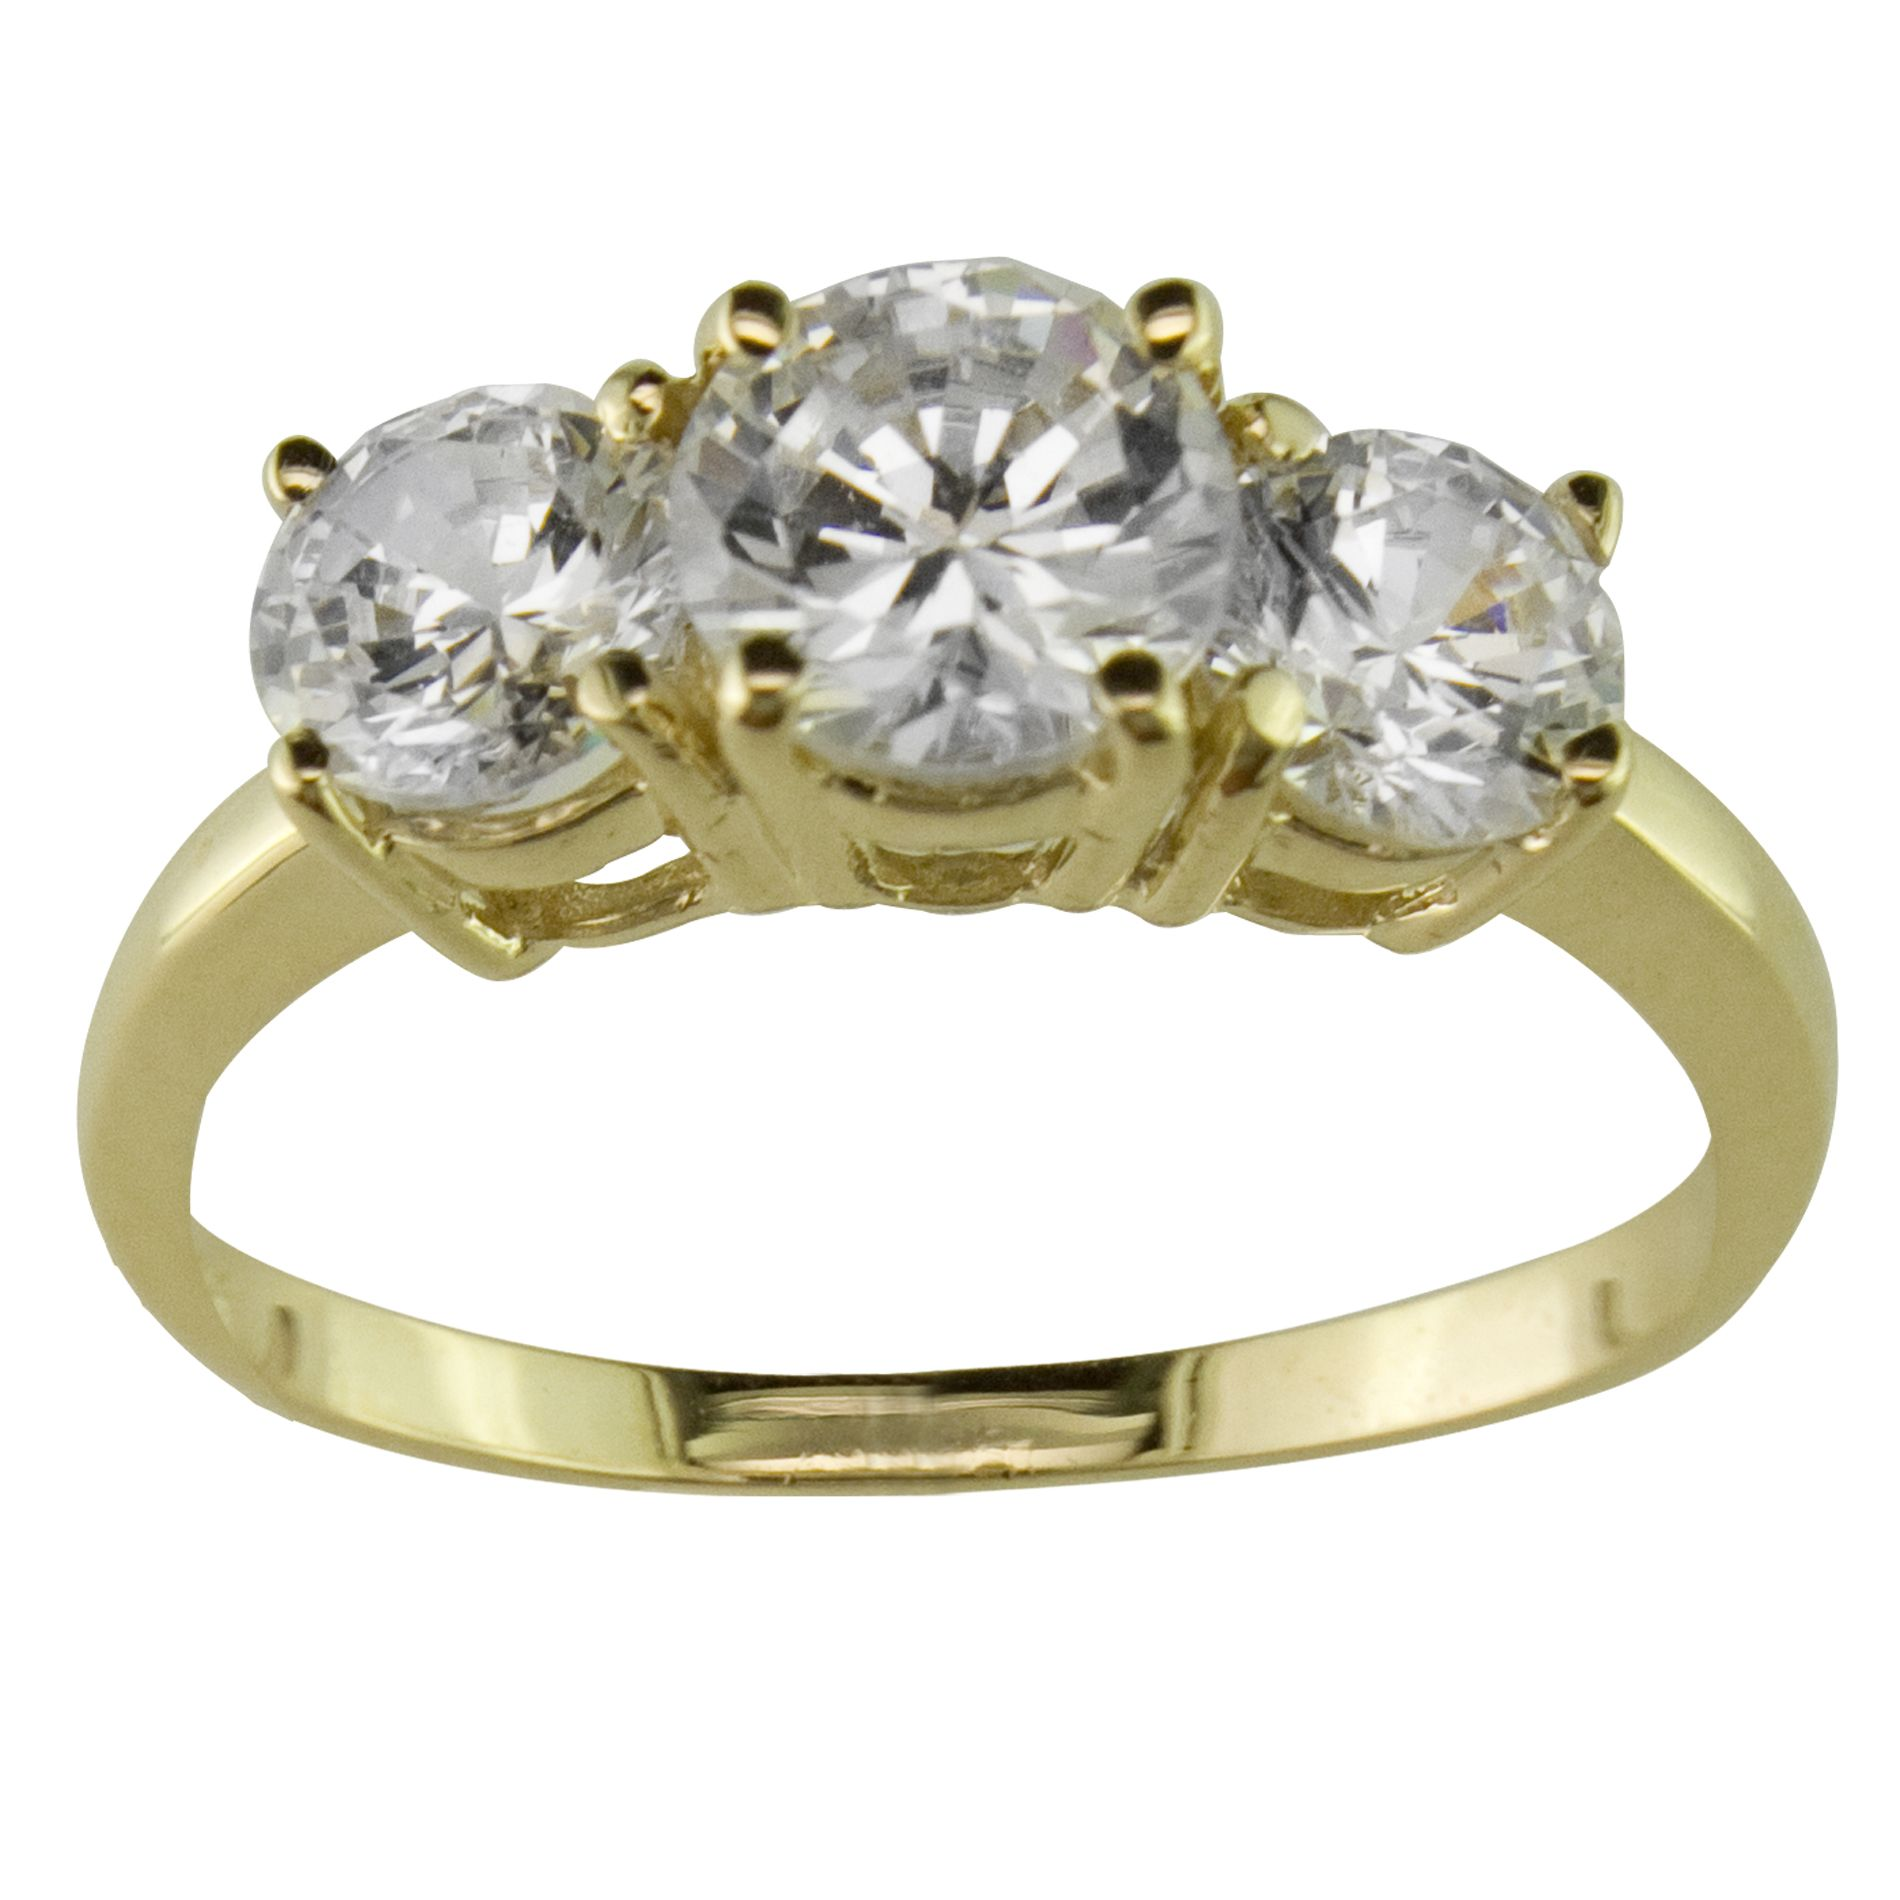 3 Stone Cubic Zirconia Ring In 10K Yellow Gold Jewelry